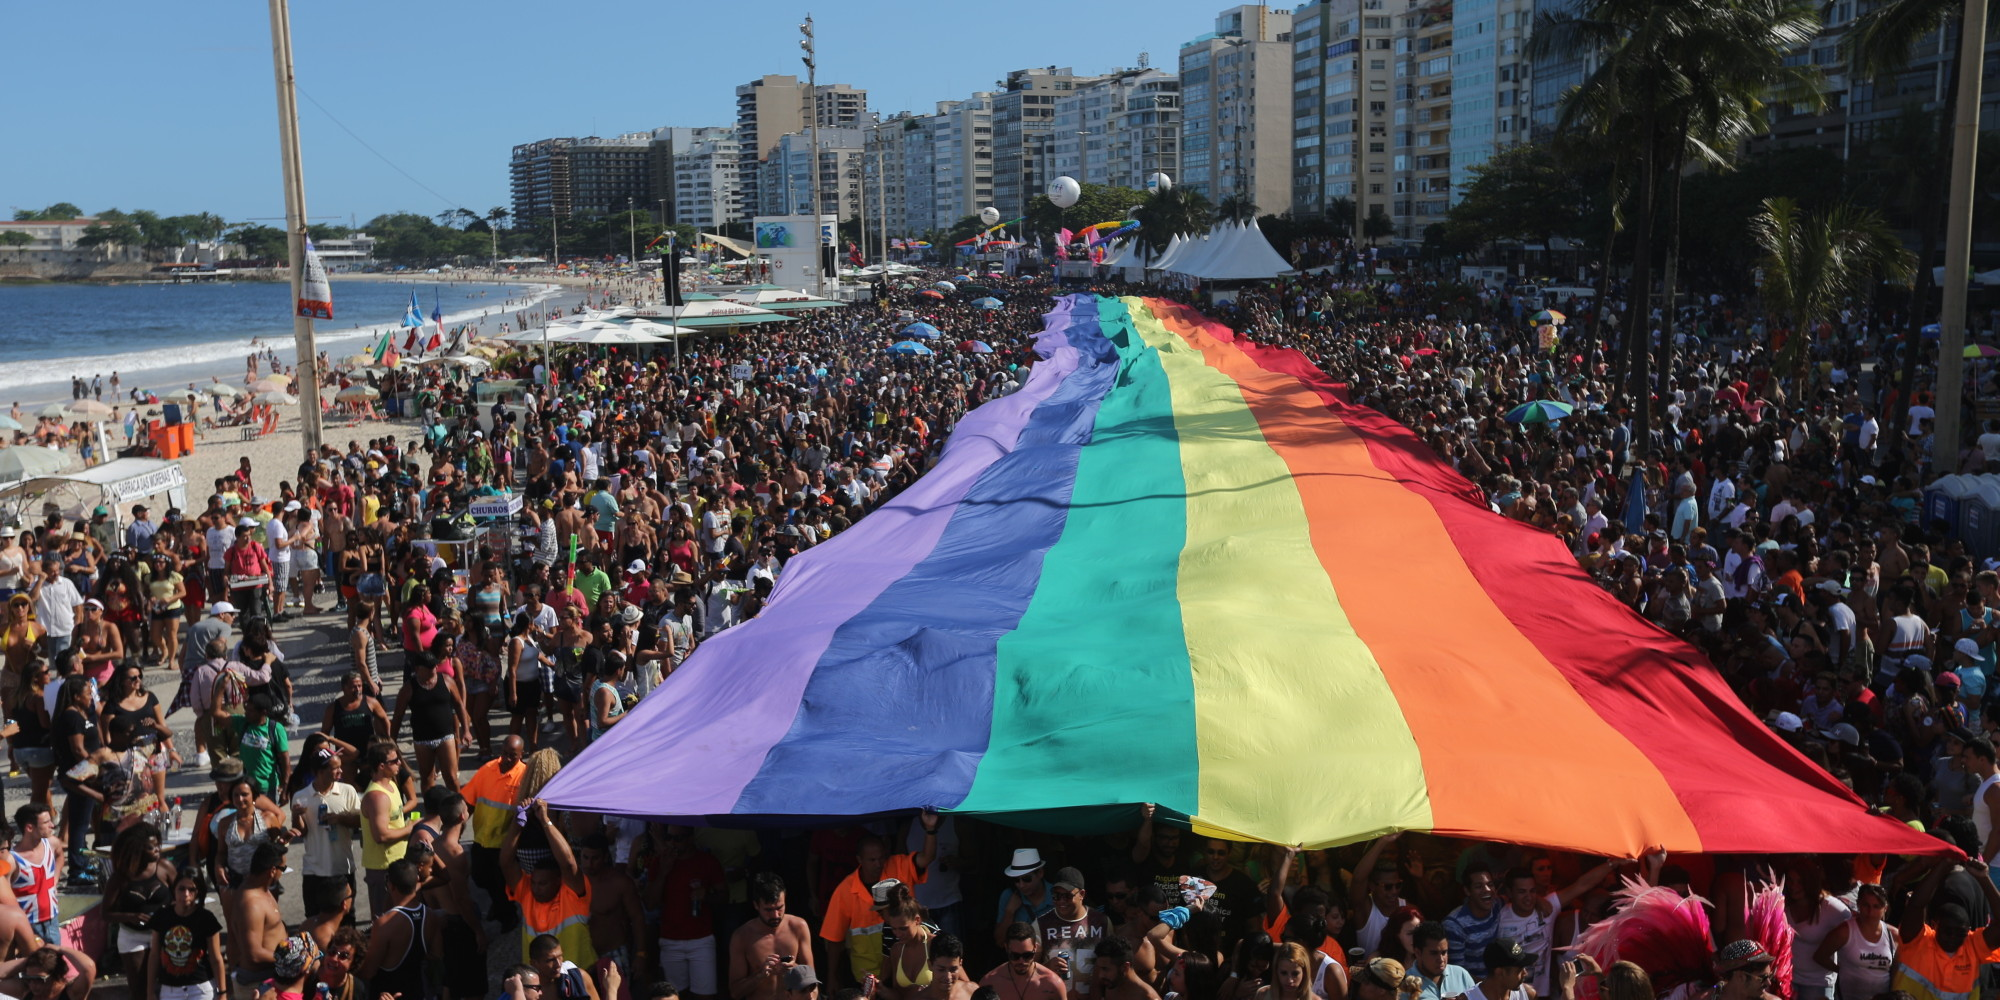 Copacabana recebe Parada Gay neste domingo